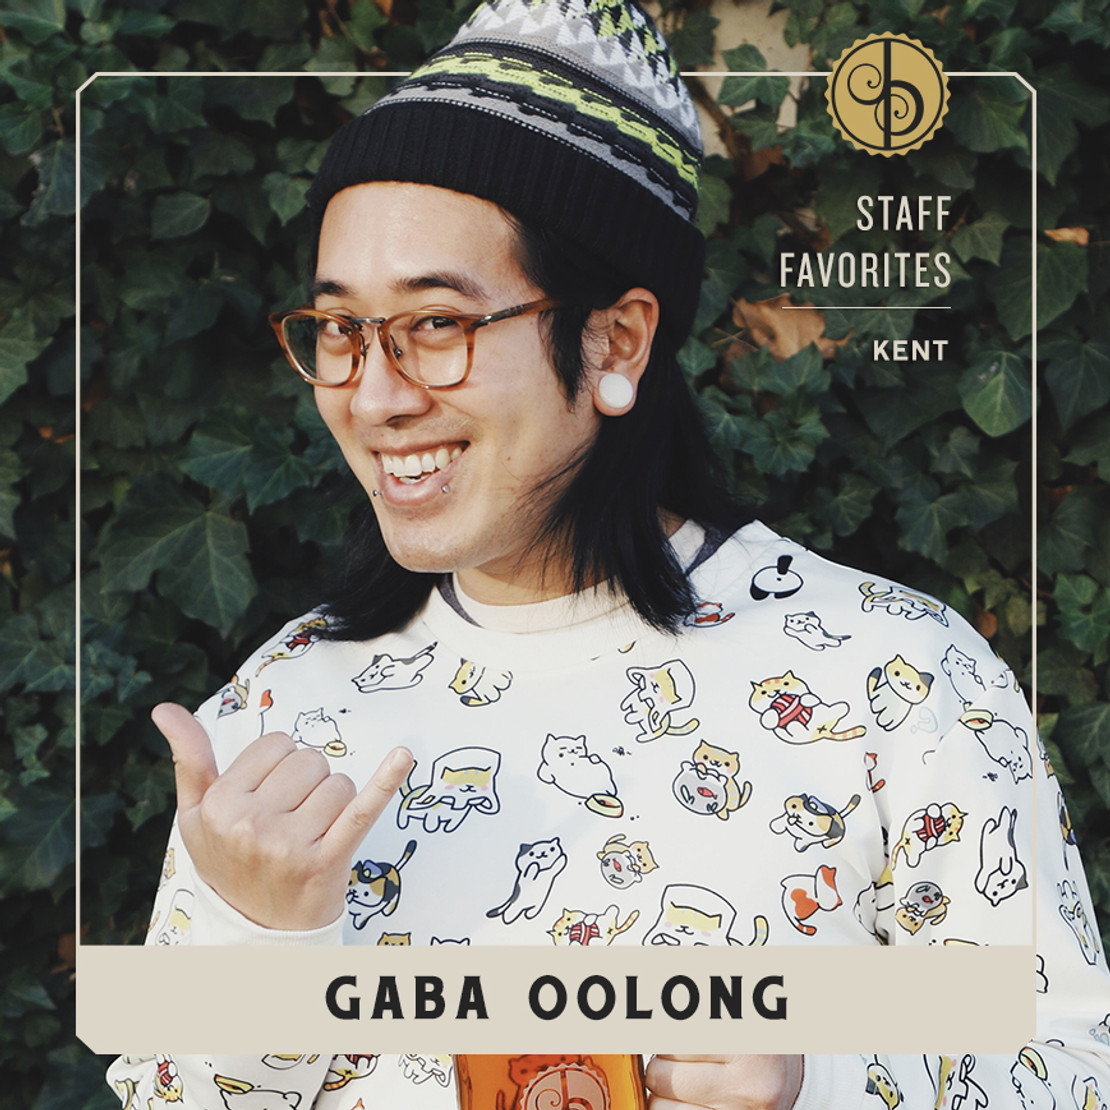 Staff Favorites: Kent & Gaba Oolong